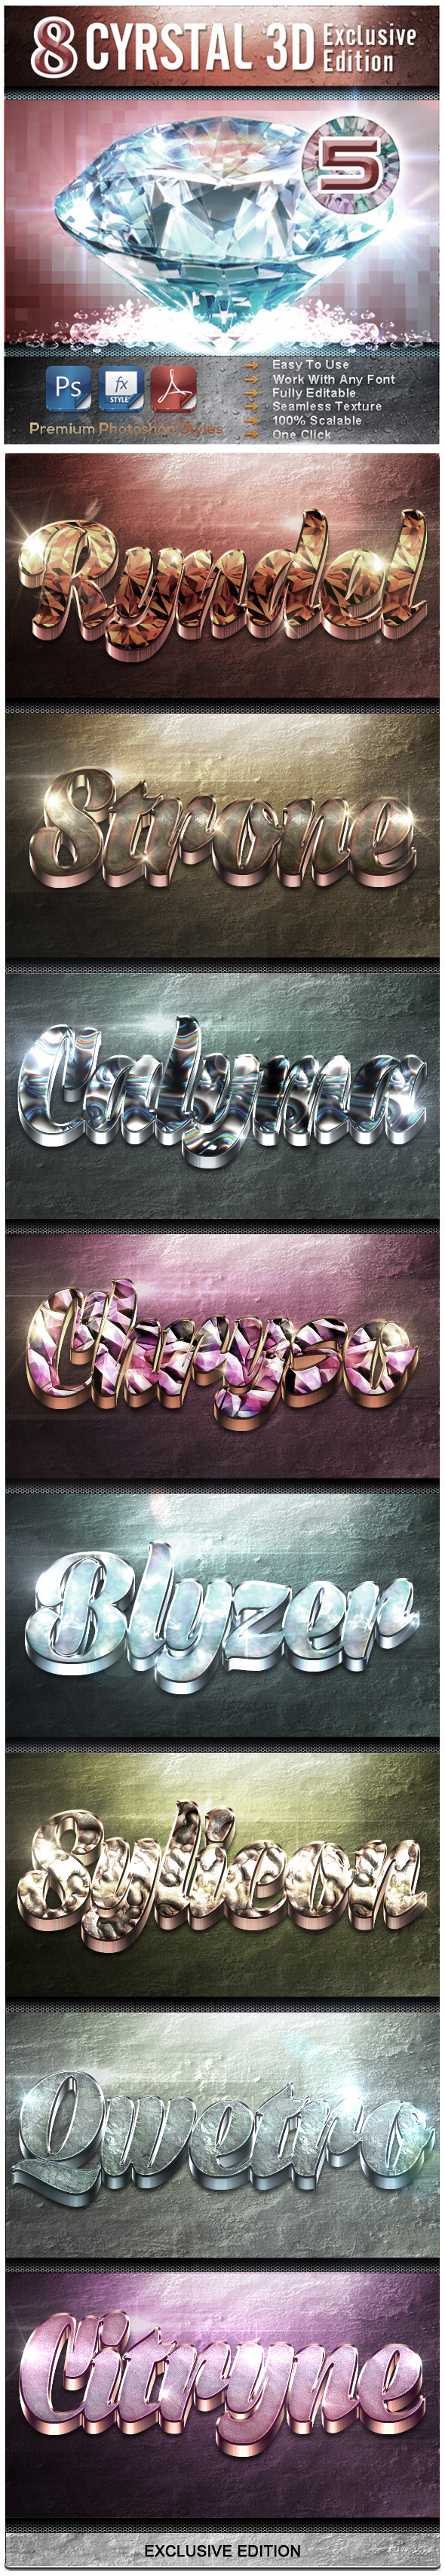 8 Crystal 3D Exclusive Edition Vol.5 - Text Effects Styles